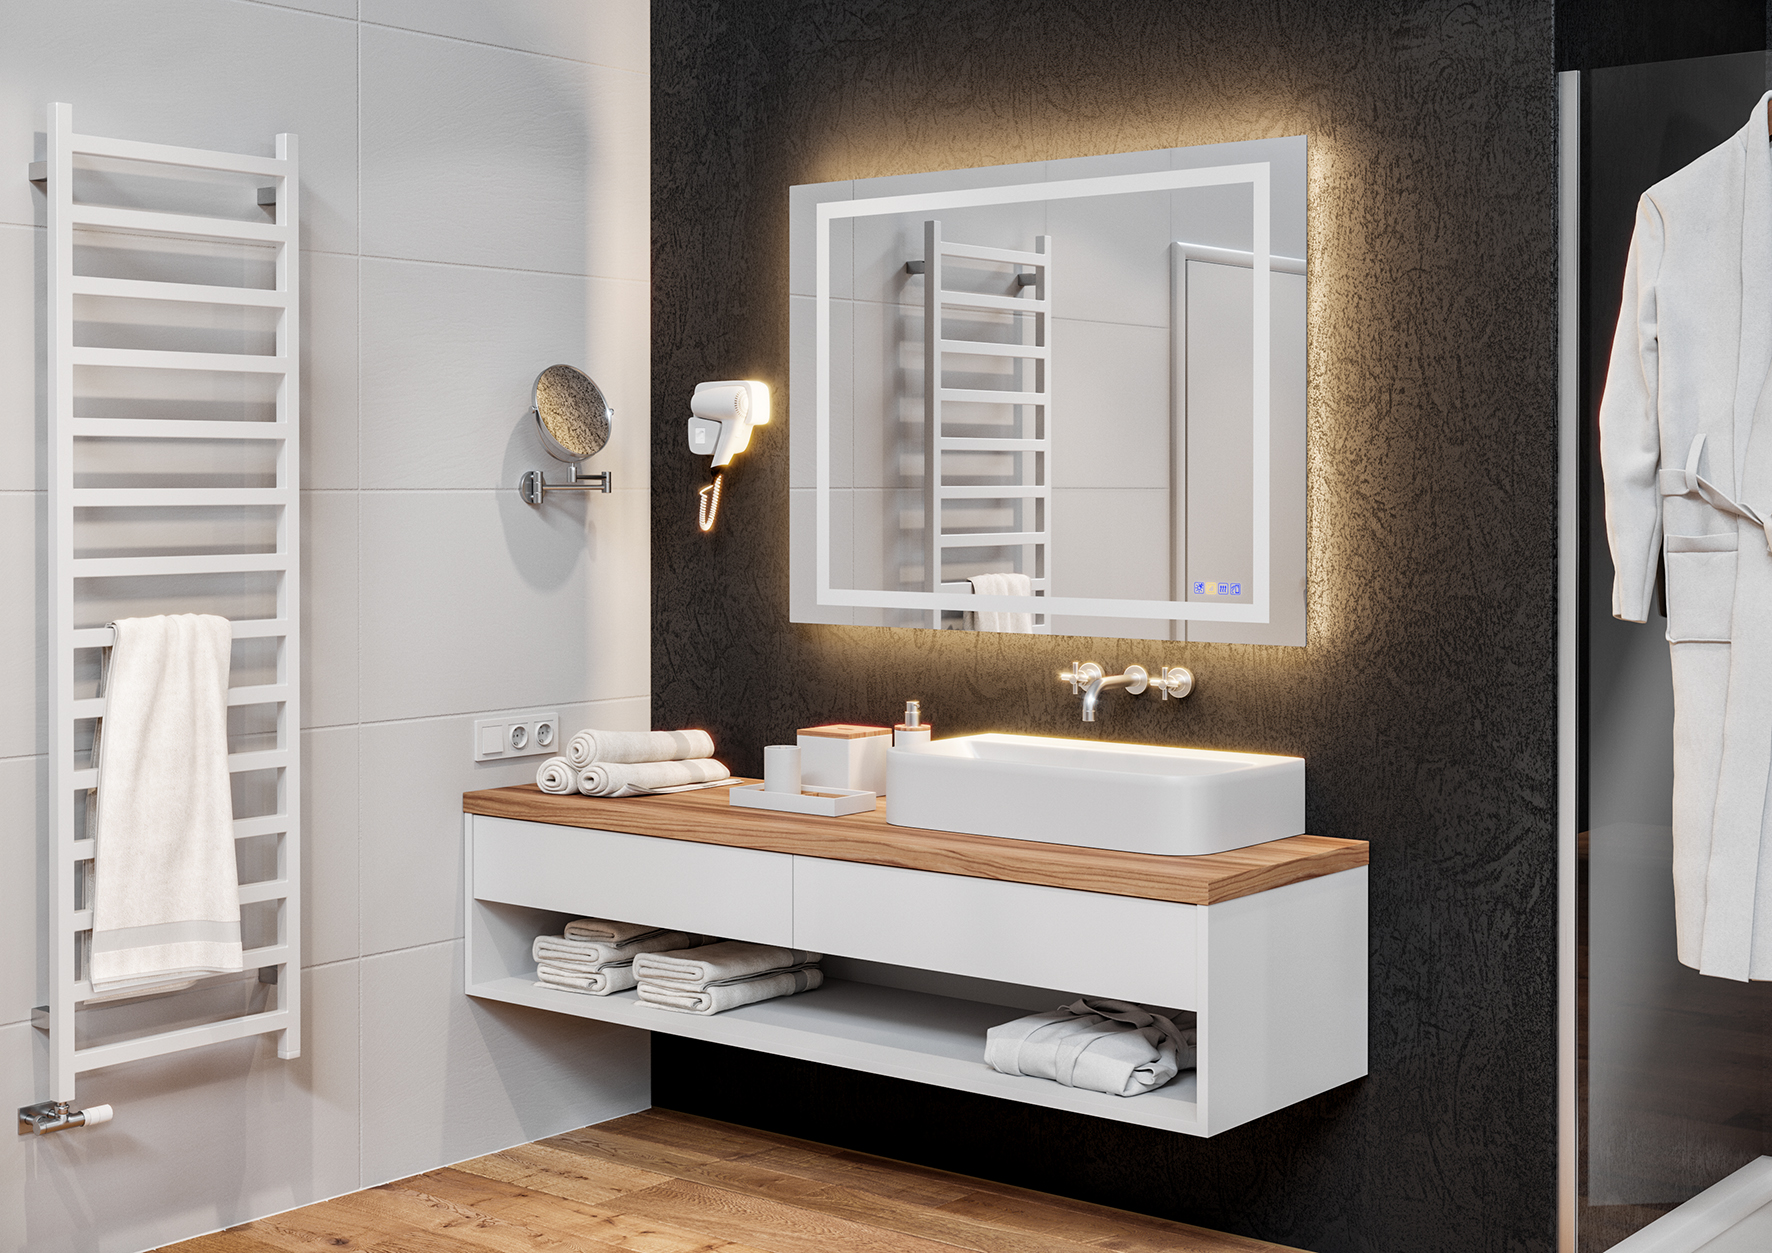 This bathroom mirror designed by Häfele is an absolute innovation. It contains different light scenarios, a sound system and a demister that effectively prevents the mirror from steaming up.